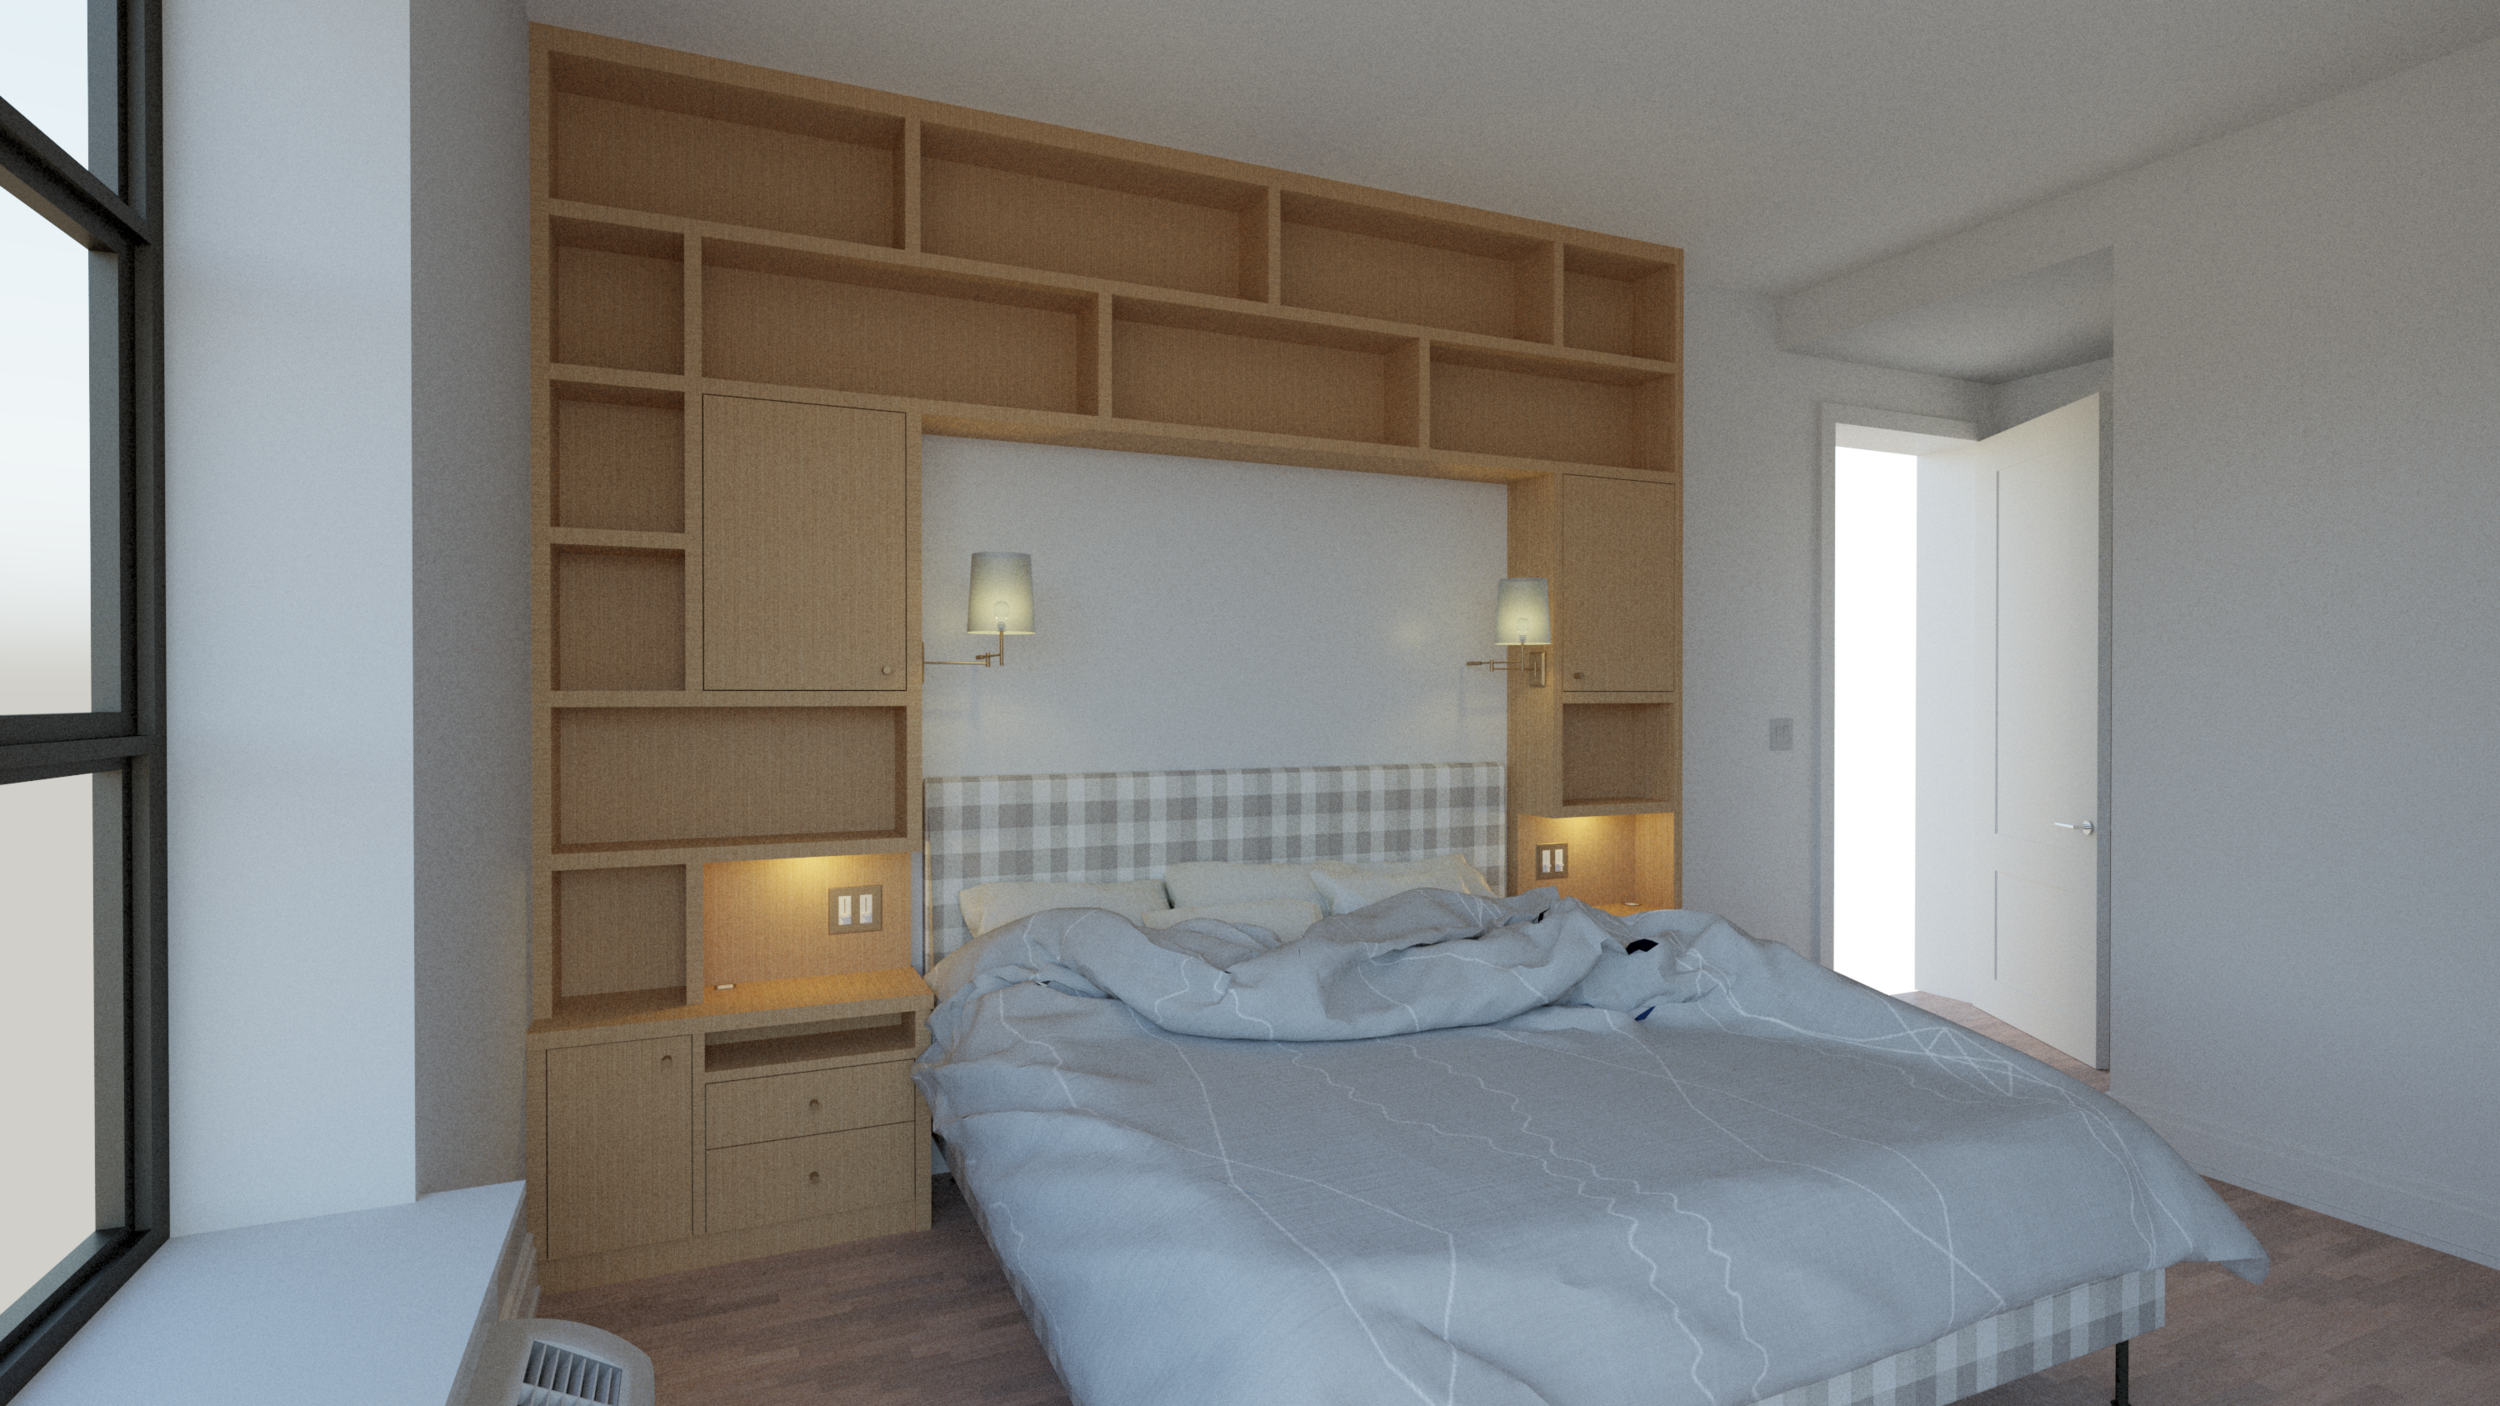 Floor-to ceiling bed surround - Shelving and storage to be built on wall around bed